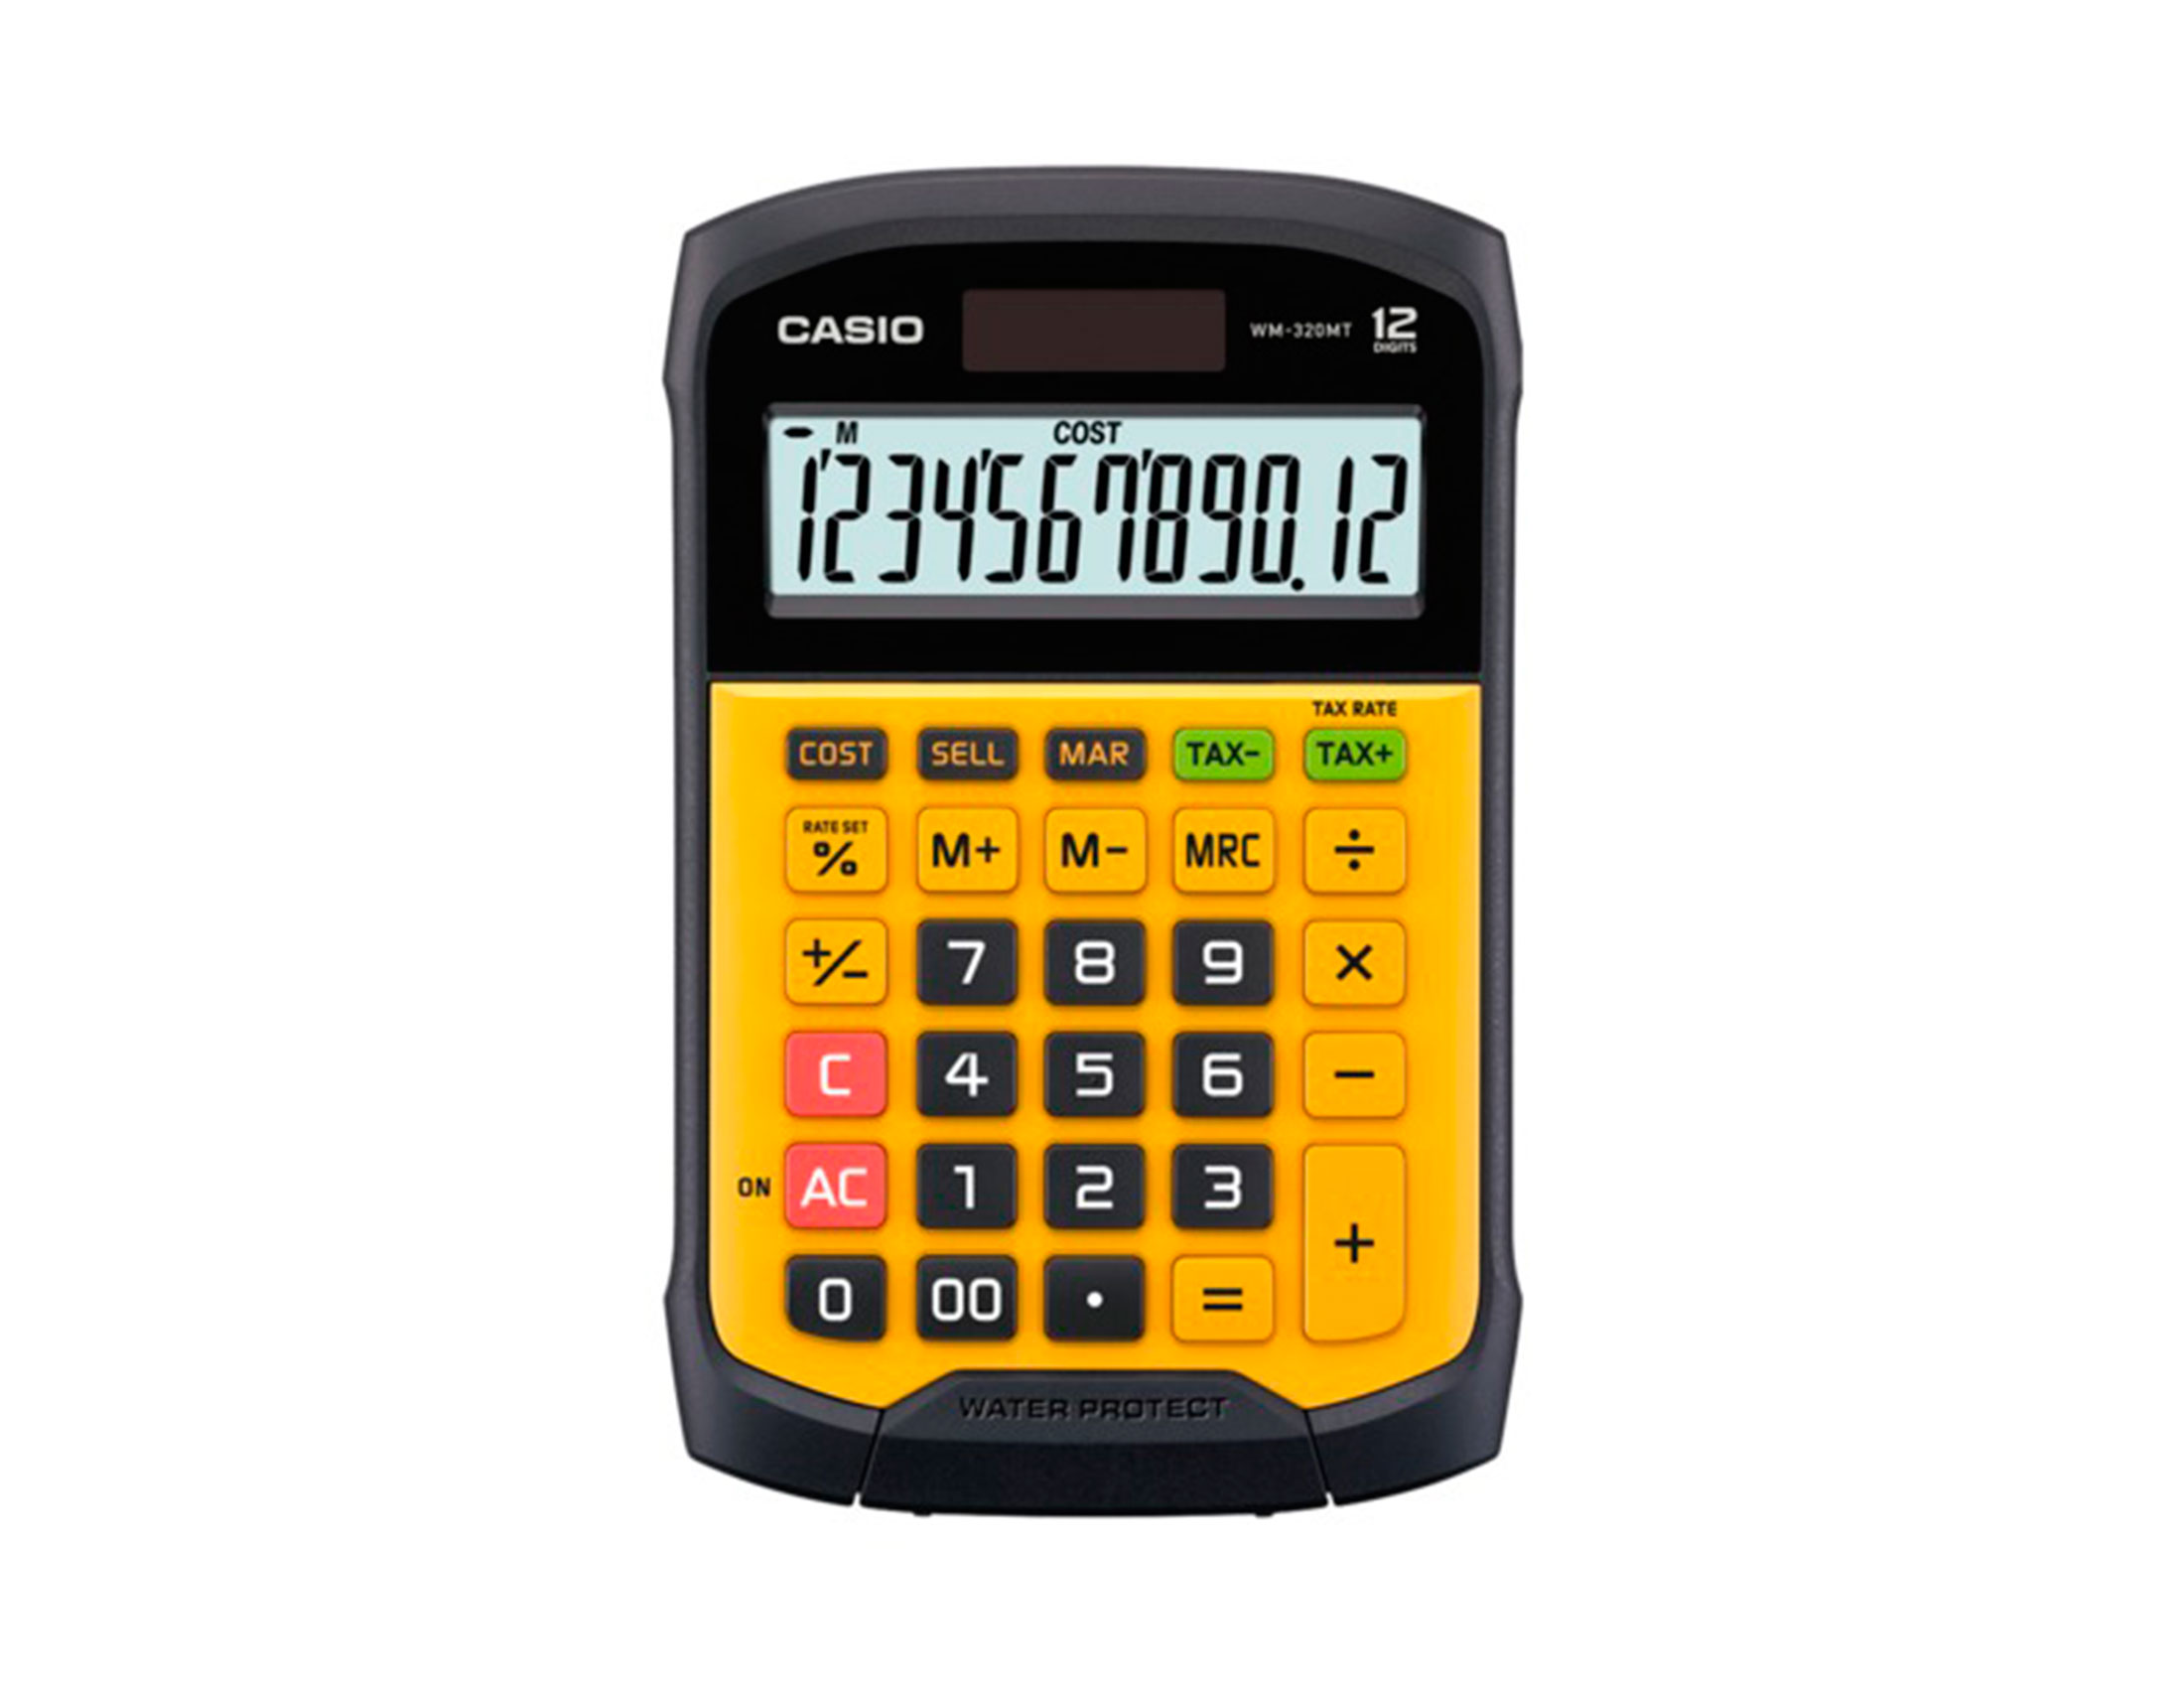 CALCULADORA 12 DIGITOS WM 320MT